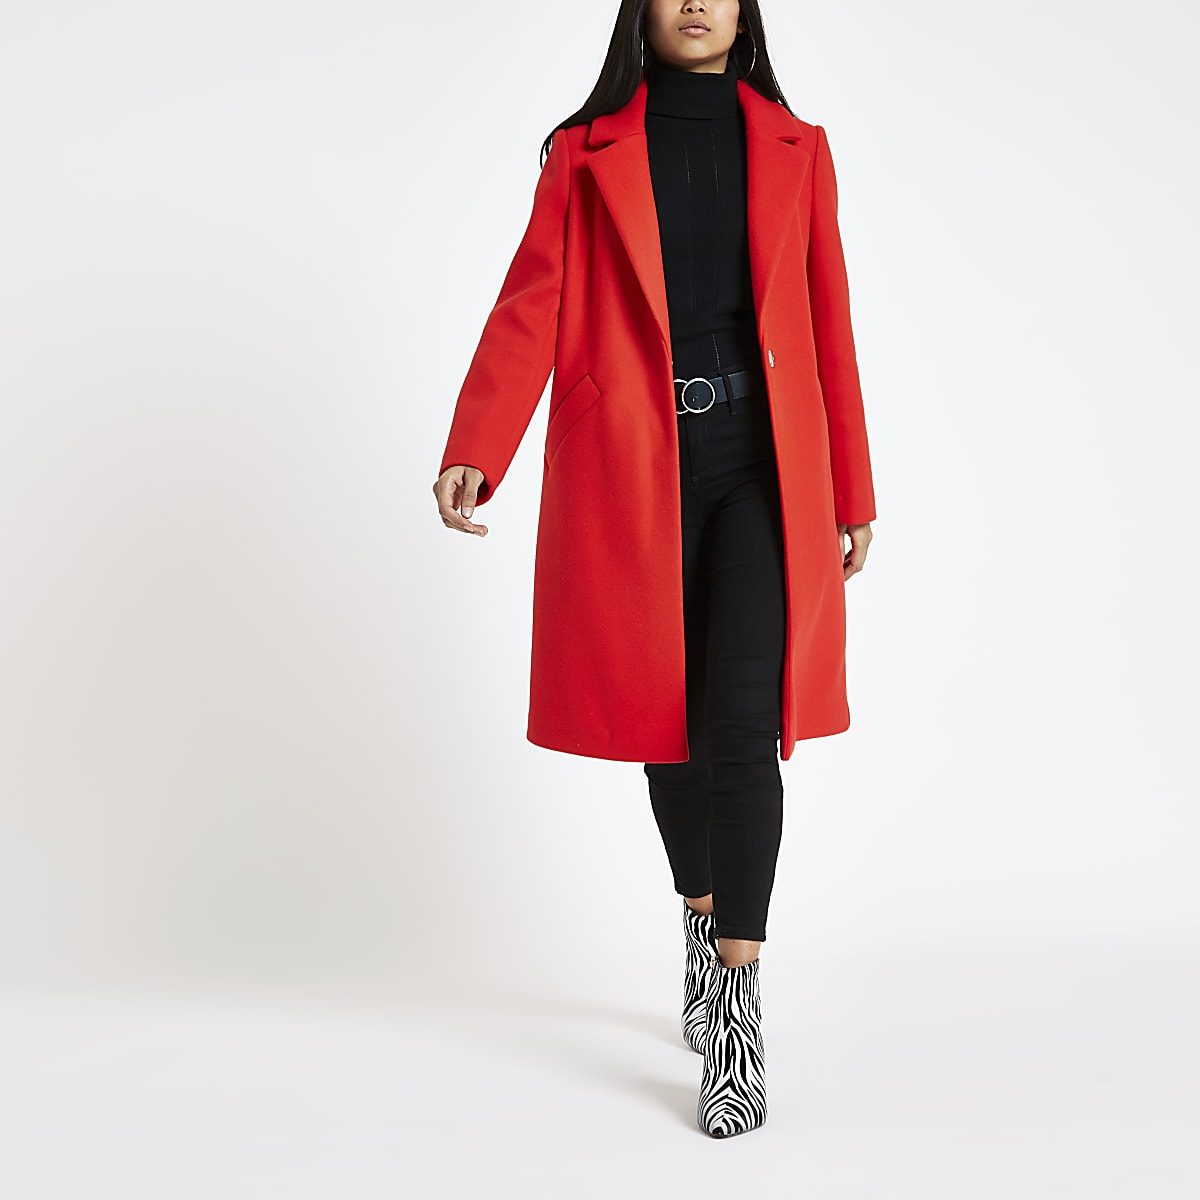 Petite red single breasted longline coat